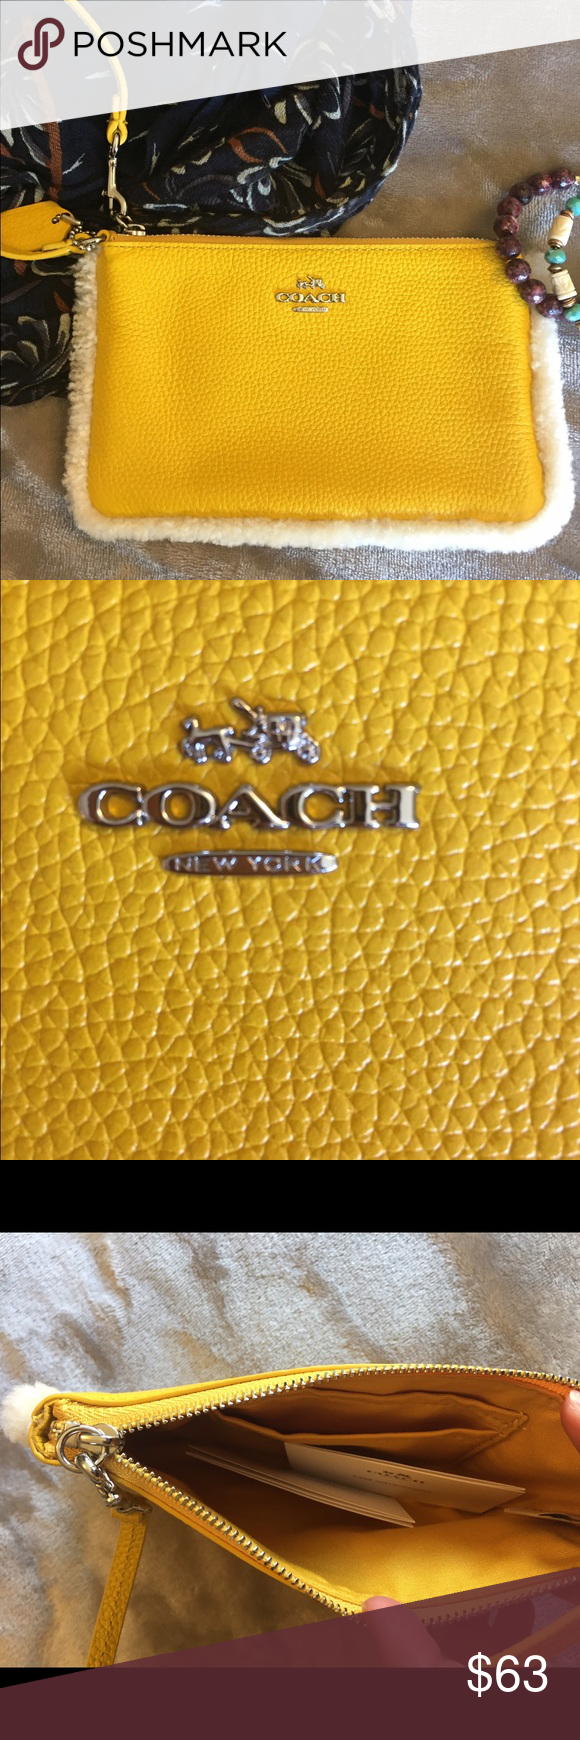 LAST CHANCE!! Coach wristlet. NWOT! Incl box. Coach wristlet. NWOT! Includes box. Yellow with fur around the edges. Brand new with box. Husband accidentally cut off price tags because he thought I was gifting it to my sister :/. Never used. UPDATE 2/18/17 - only available for a few more days, then it's coming out of the box and going into my personal collection.:) Coach Bags Clutches & Wristlets